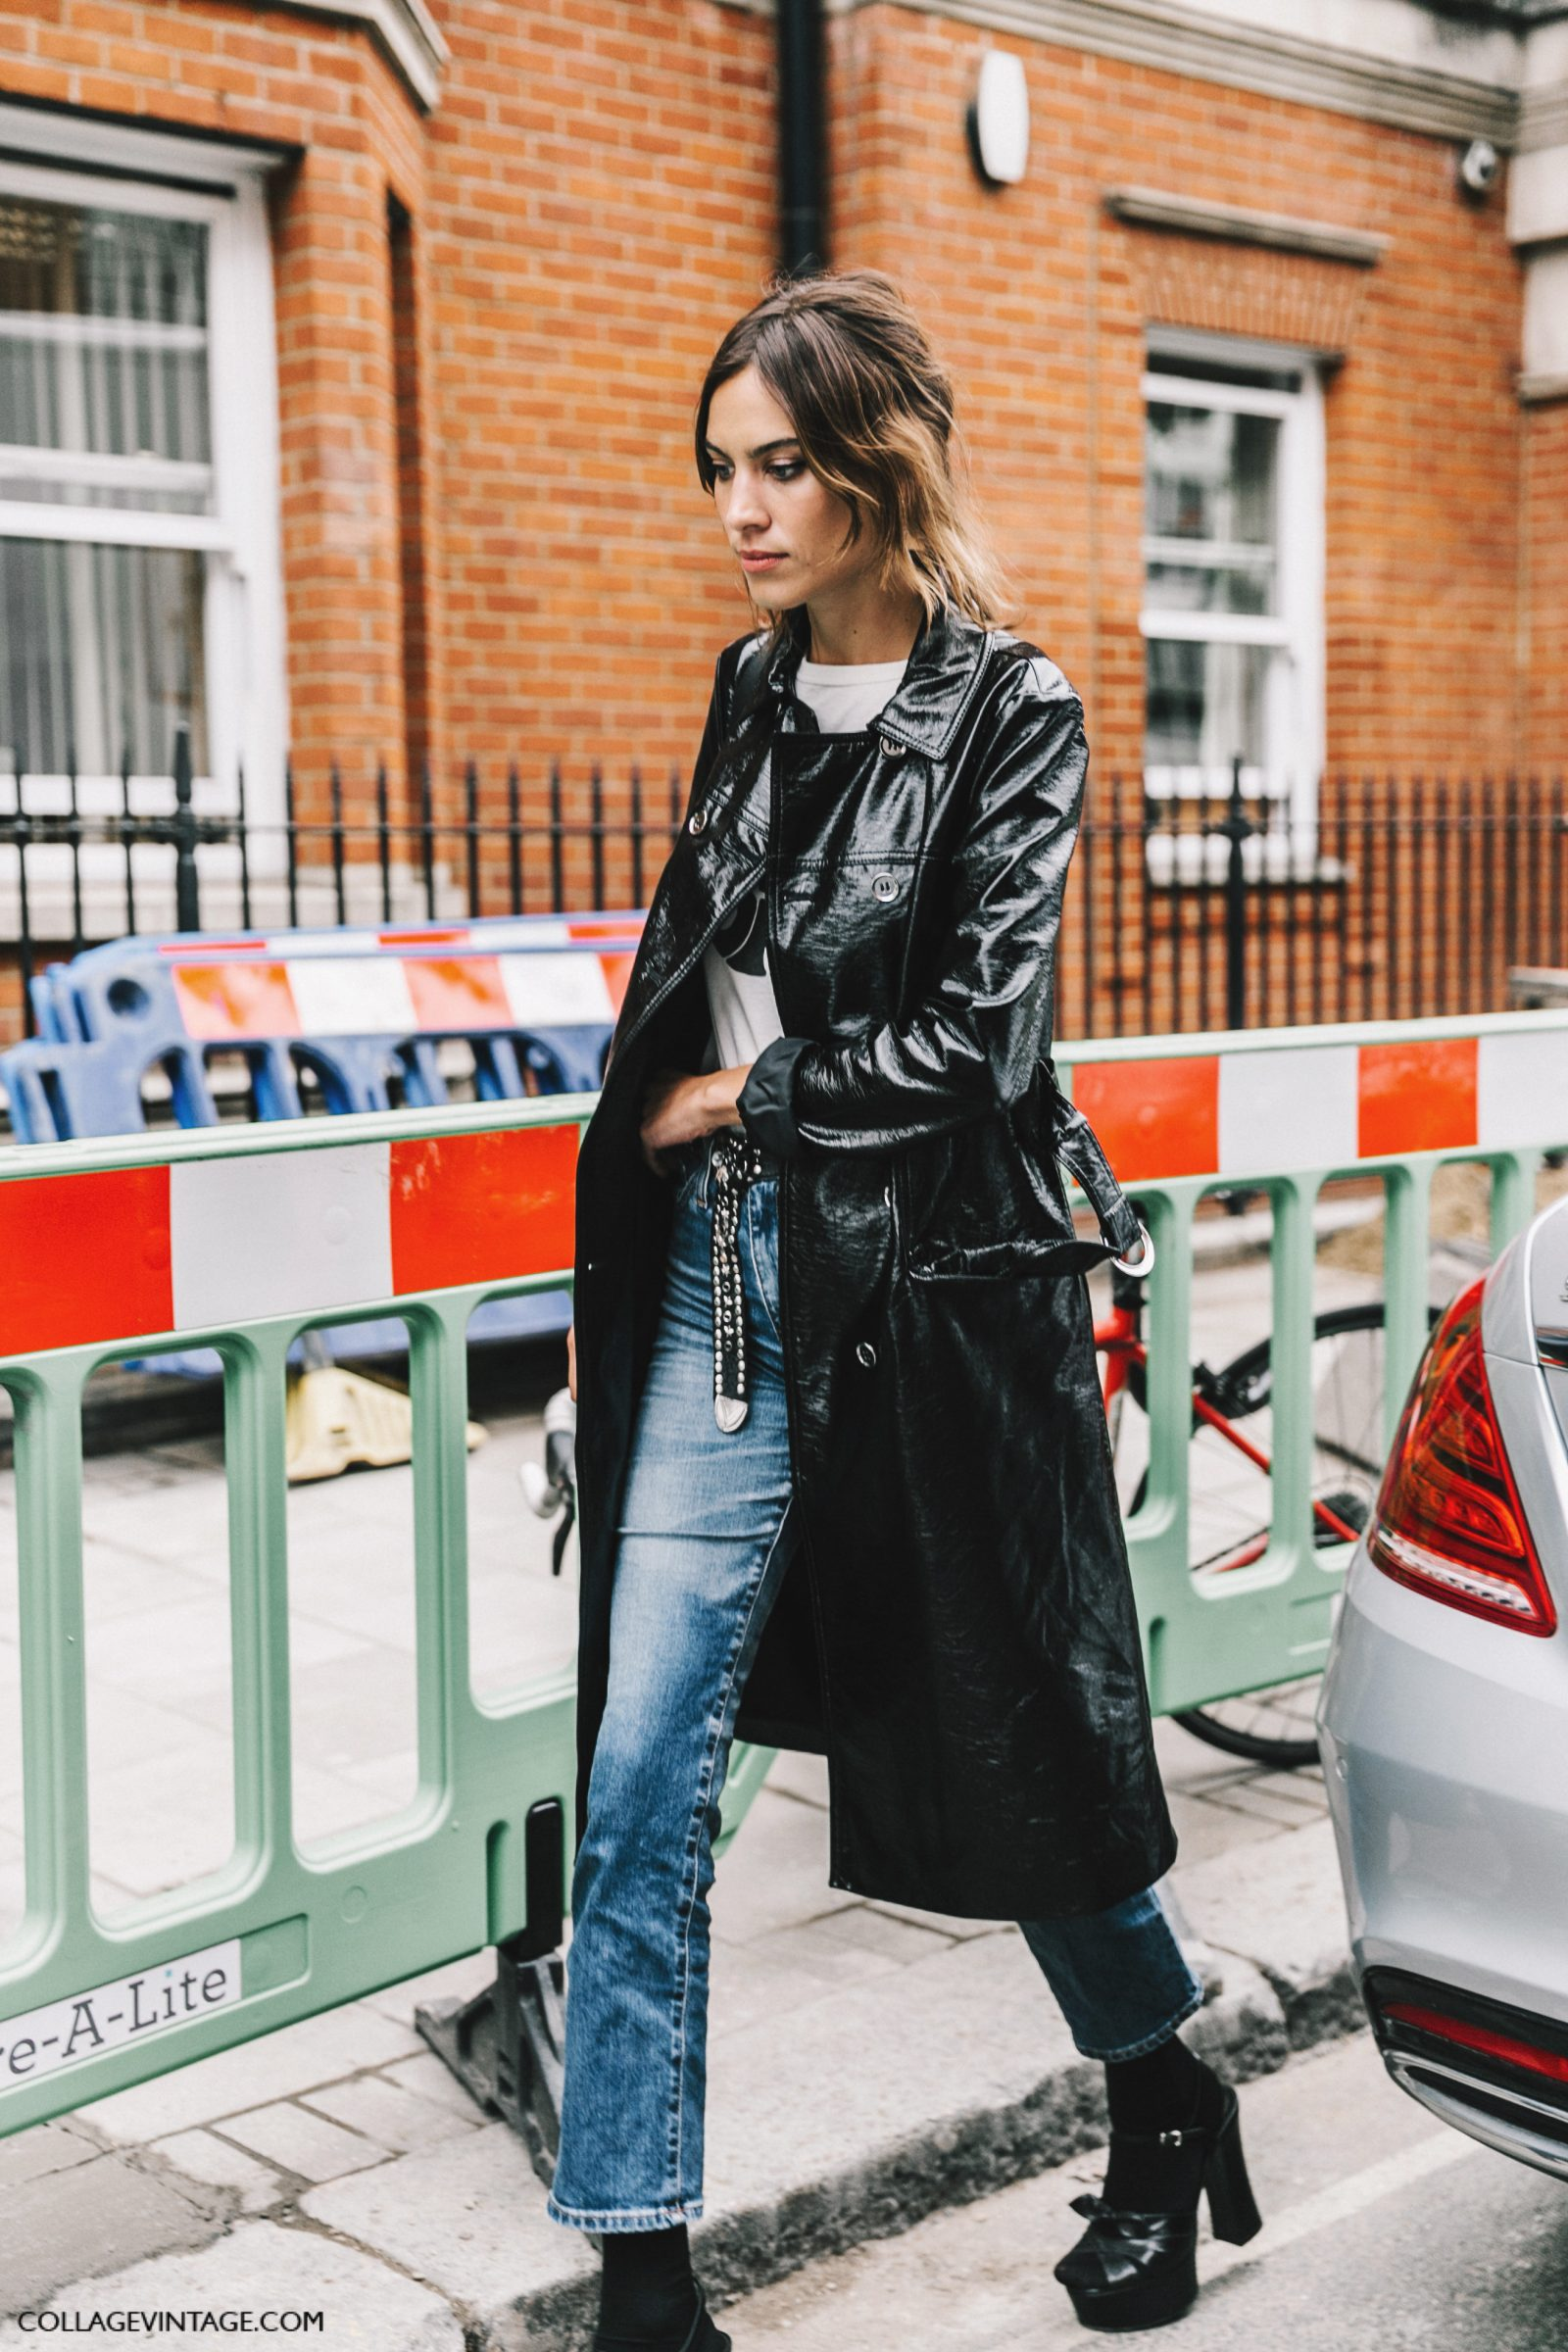 lfw-london_fashion_week_ss17-street_style-outfits-collage_vintage-vintage-jw_anderson-house_of_holland-187